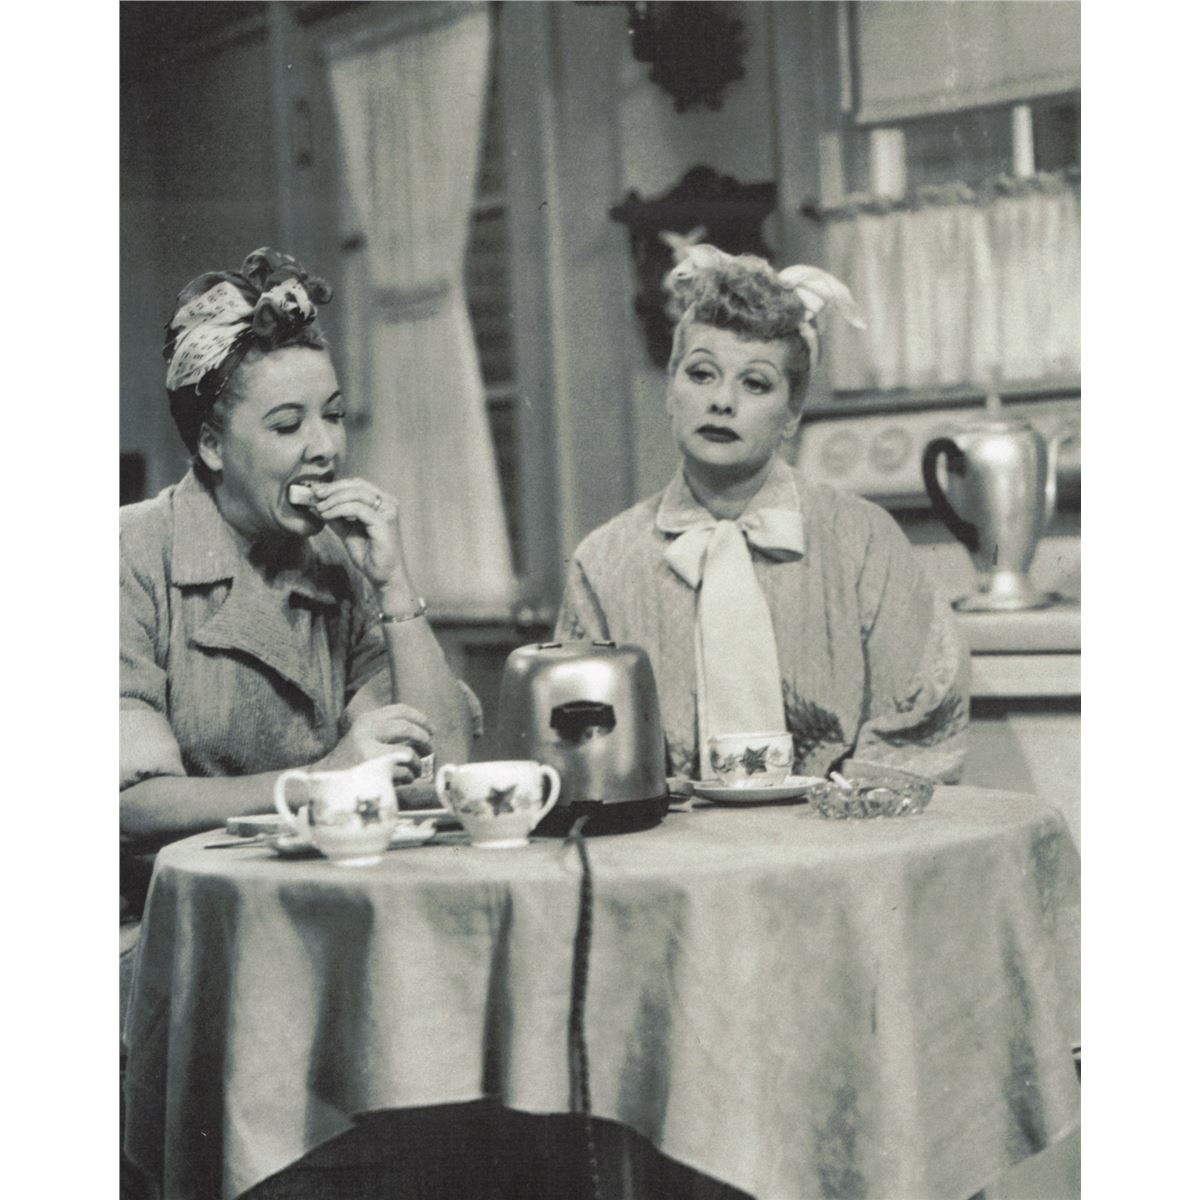 Image 14 Original Set Of Kitchenware Props Used In I Love Lucy